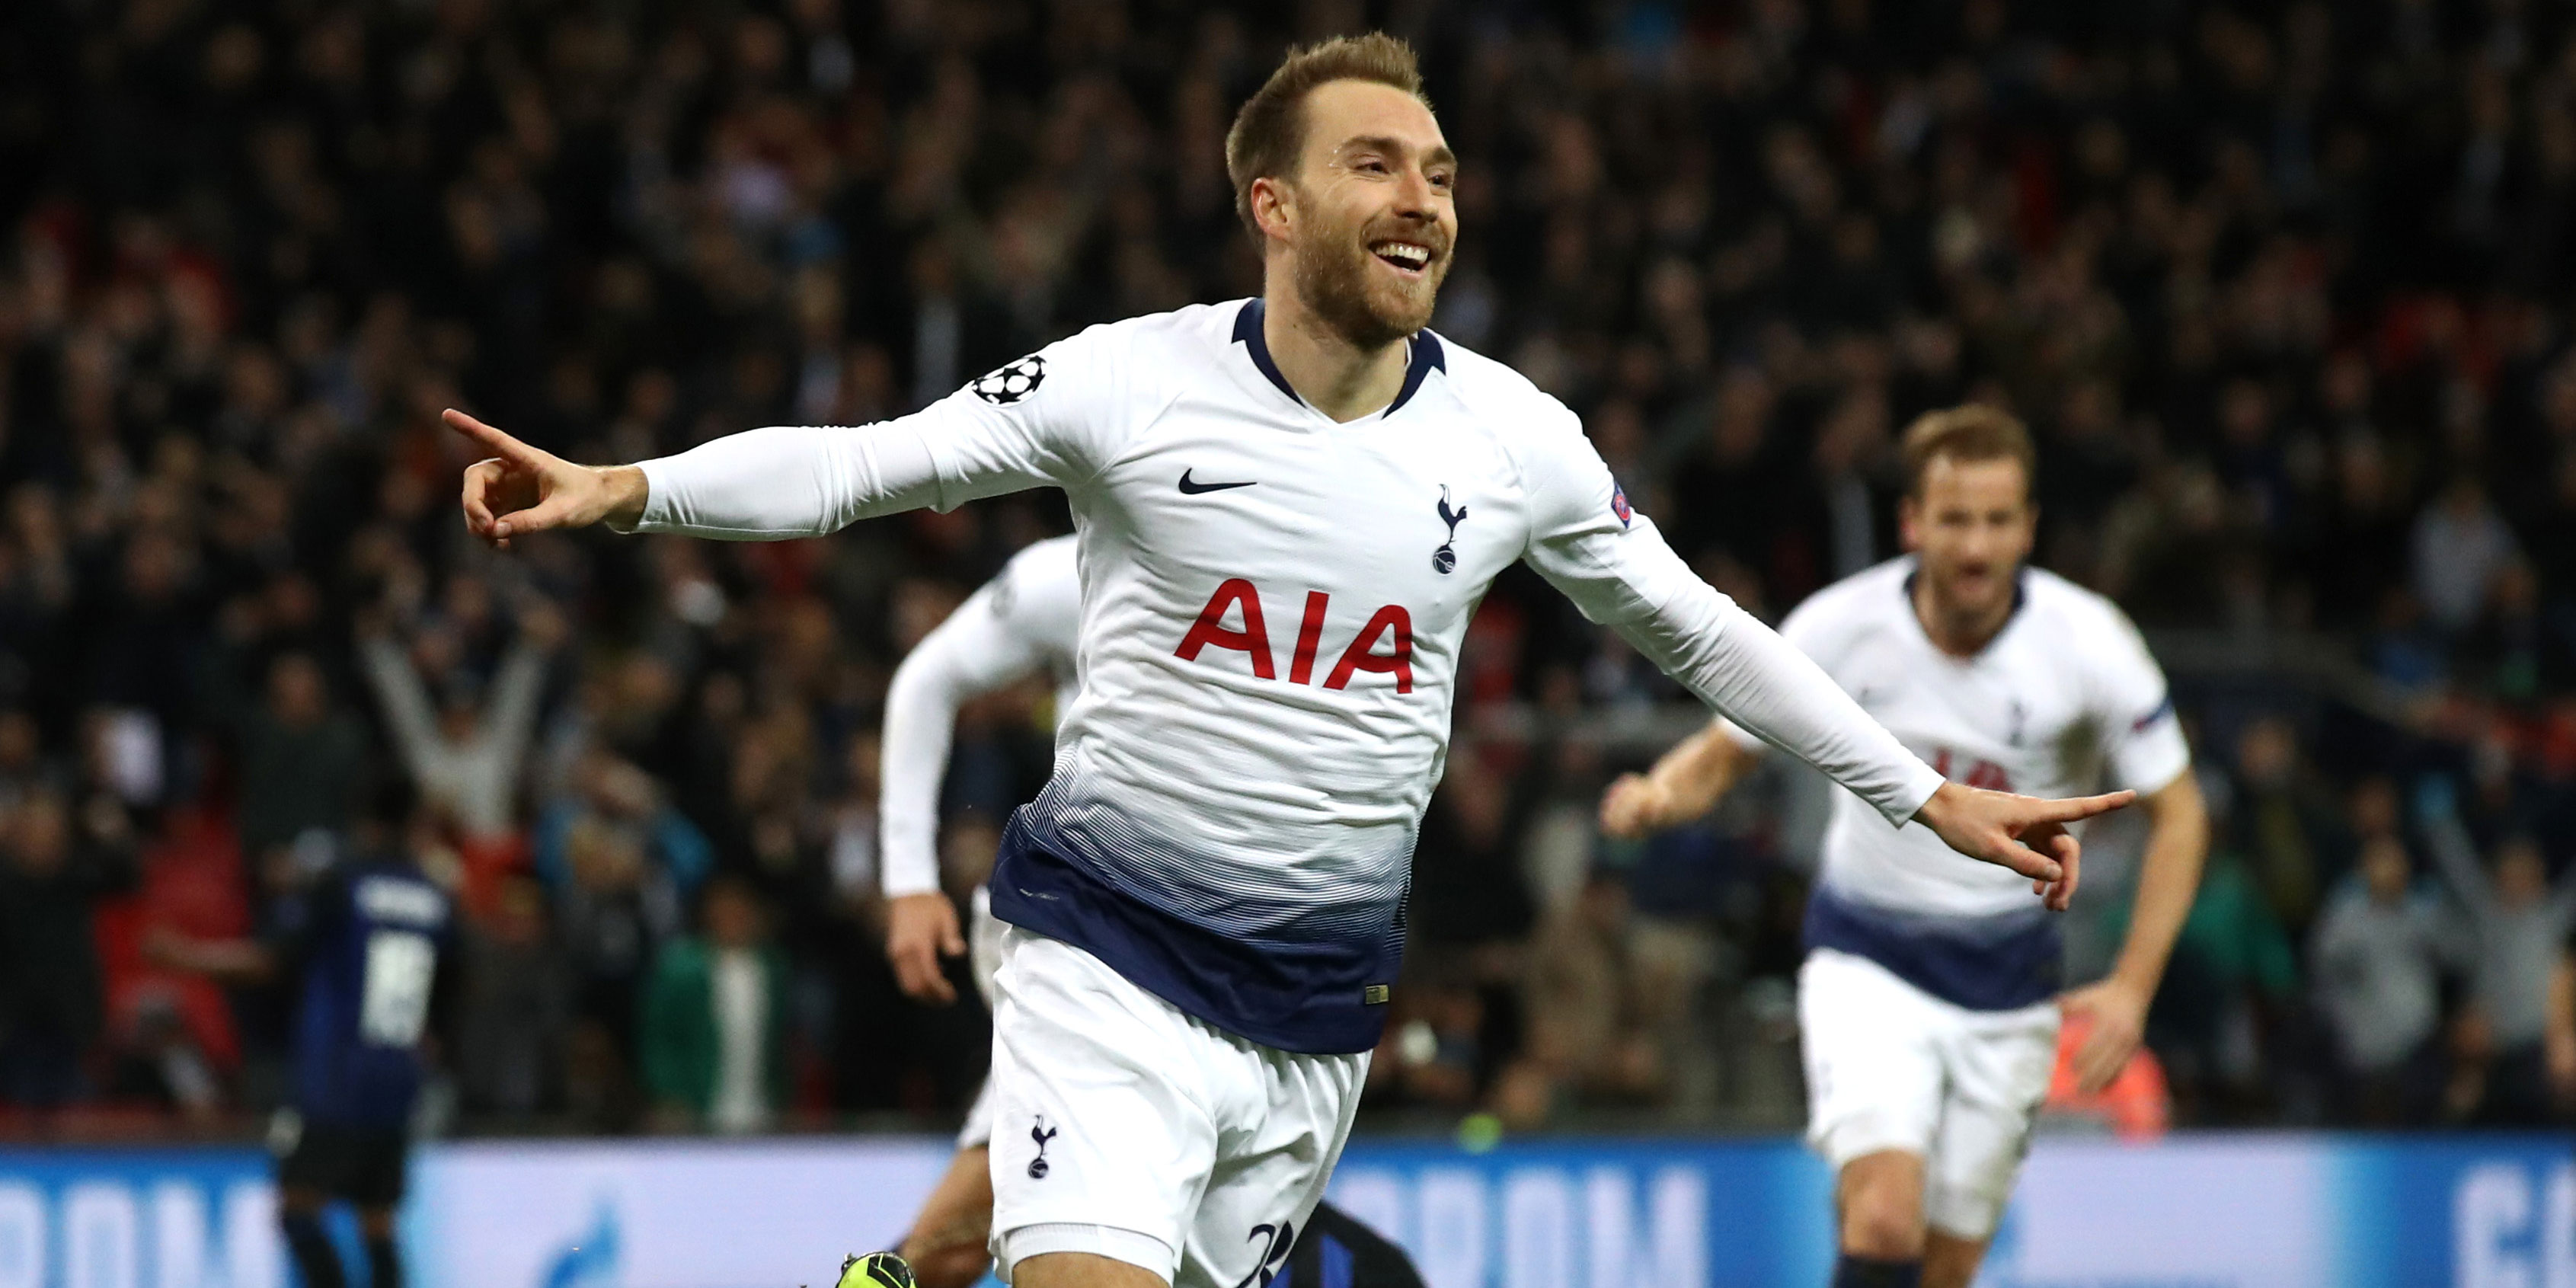 Christian eriksen celebrates scoring a goal for Tottenham